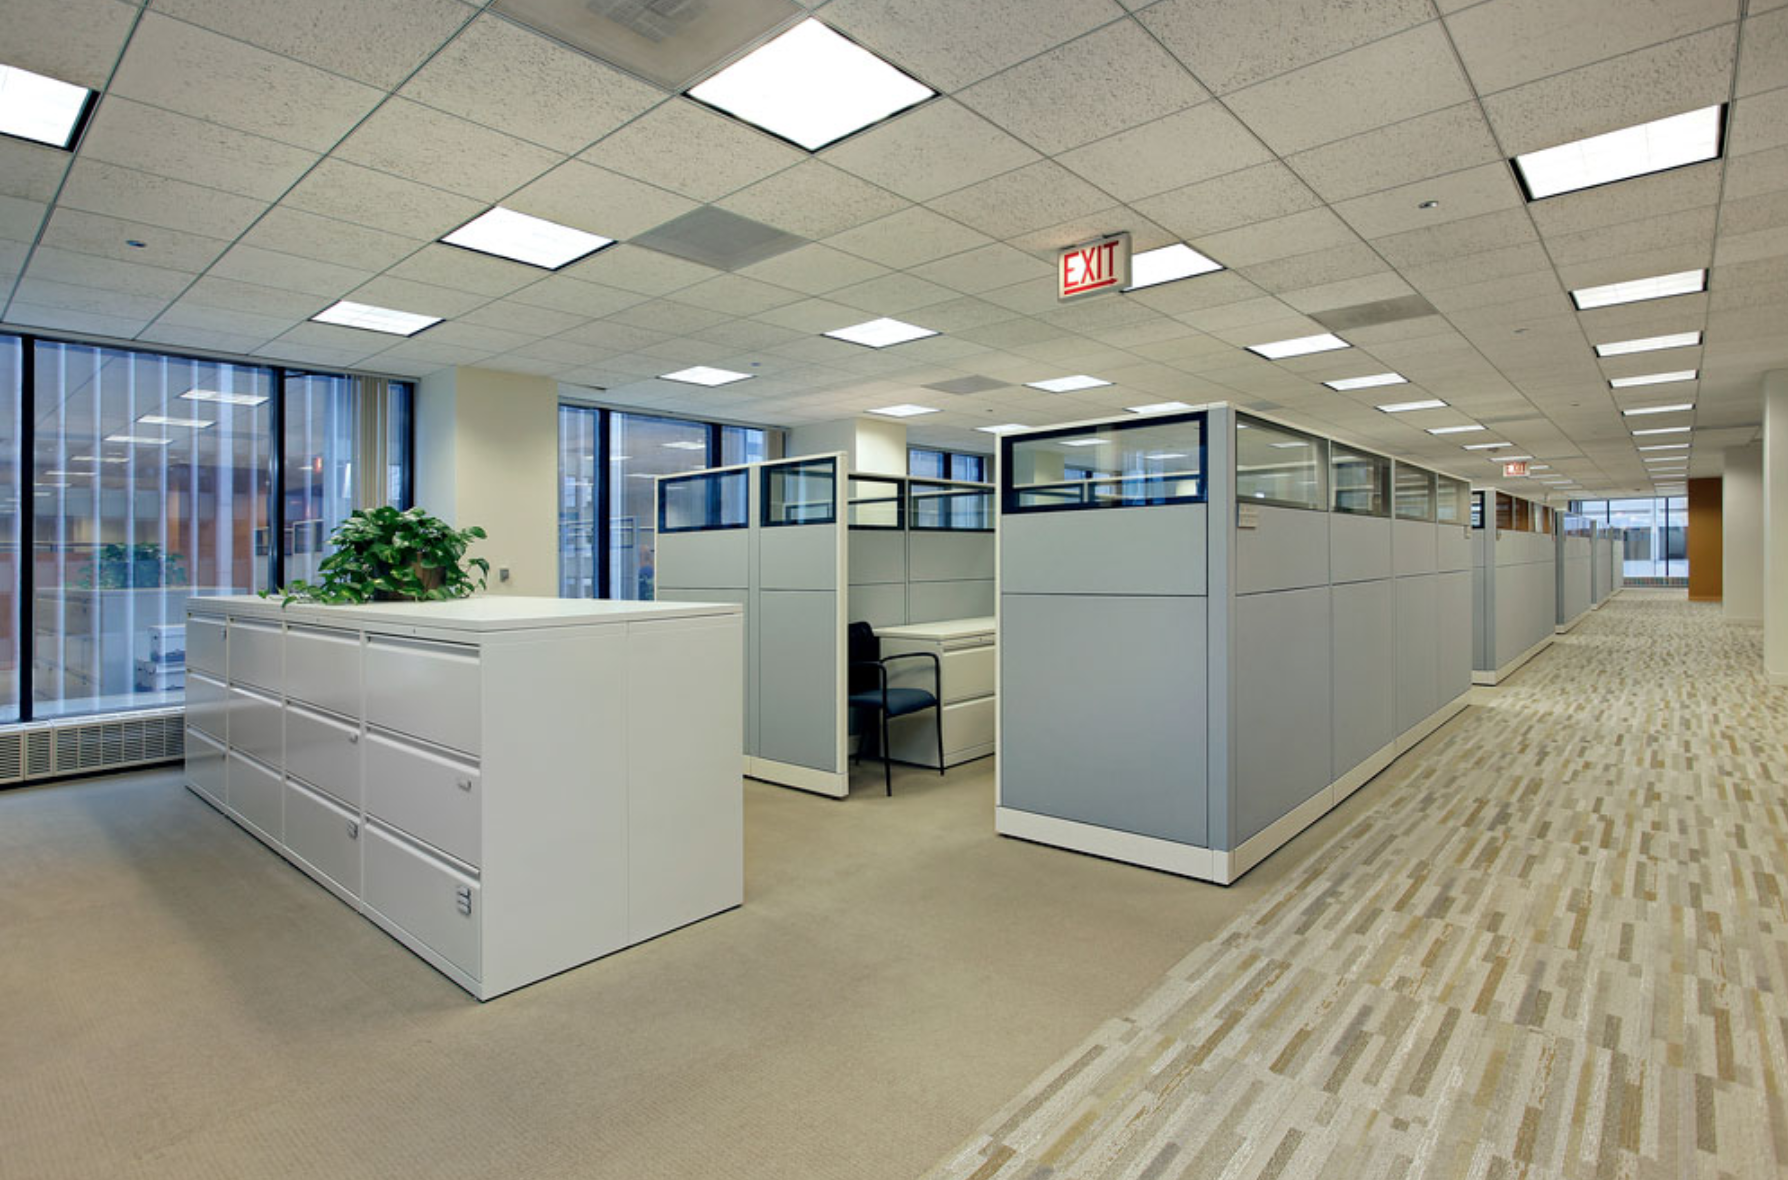 Optimize Your Office with Our Room Planner & Design Services